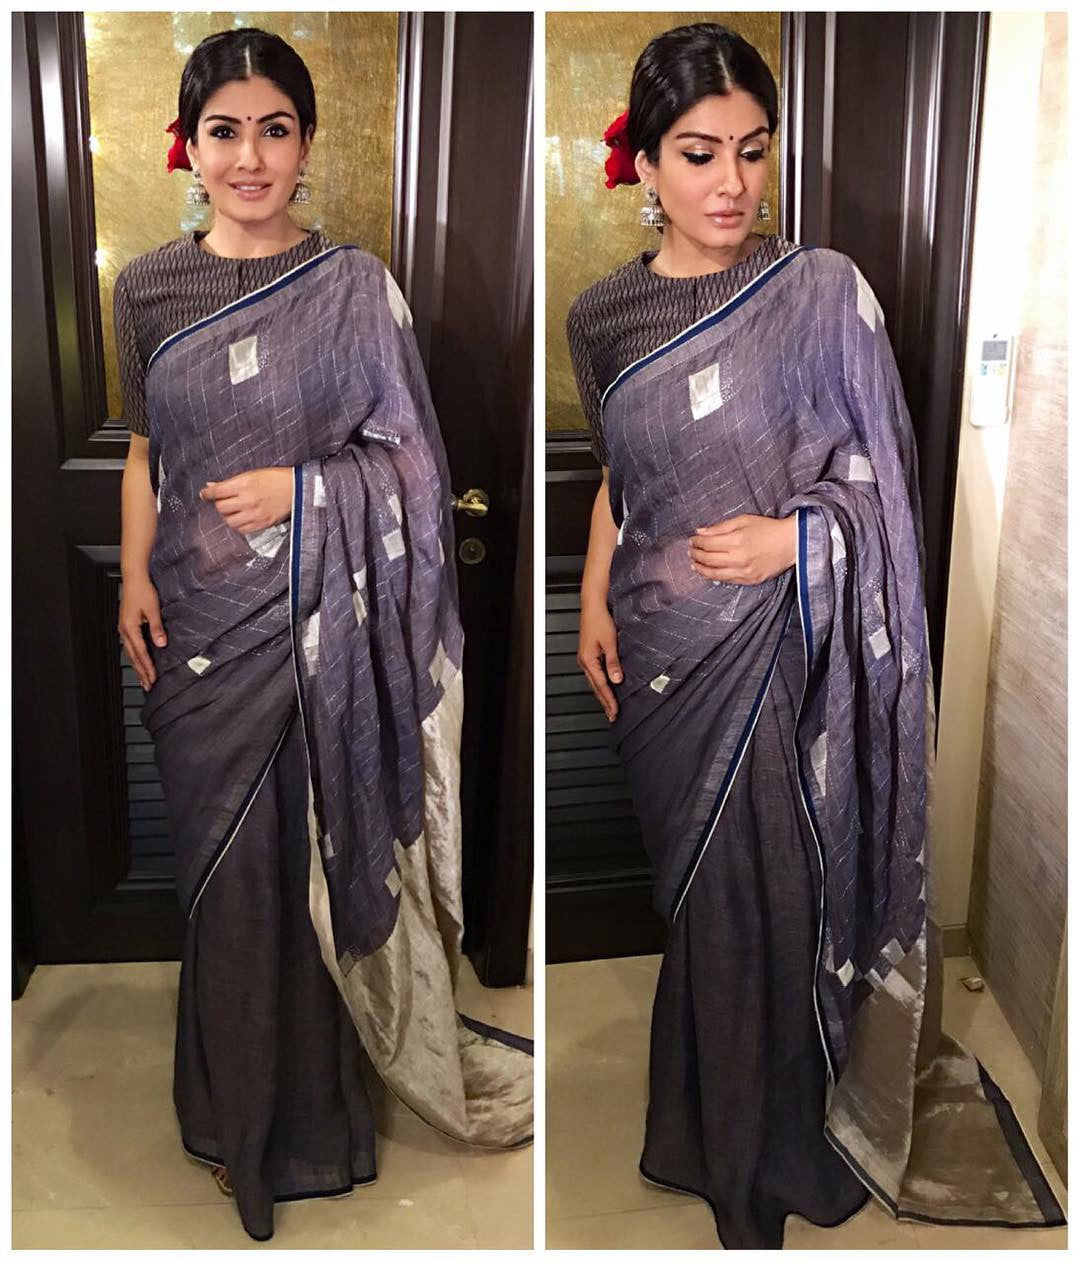 Raveena Tandon dressed up in a grey checkered saree by Anavila.